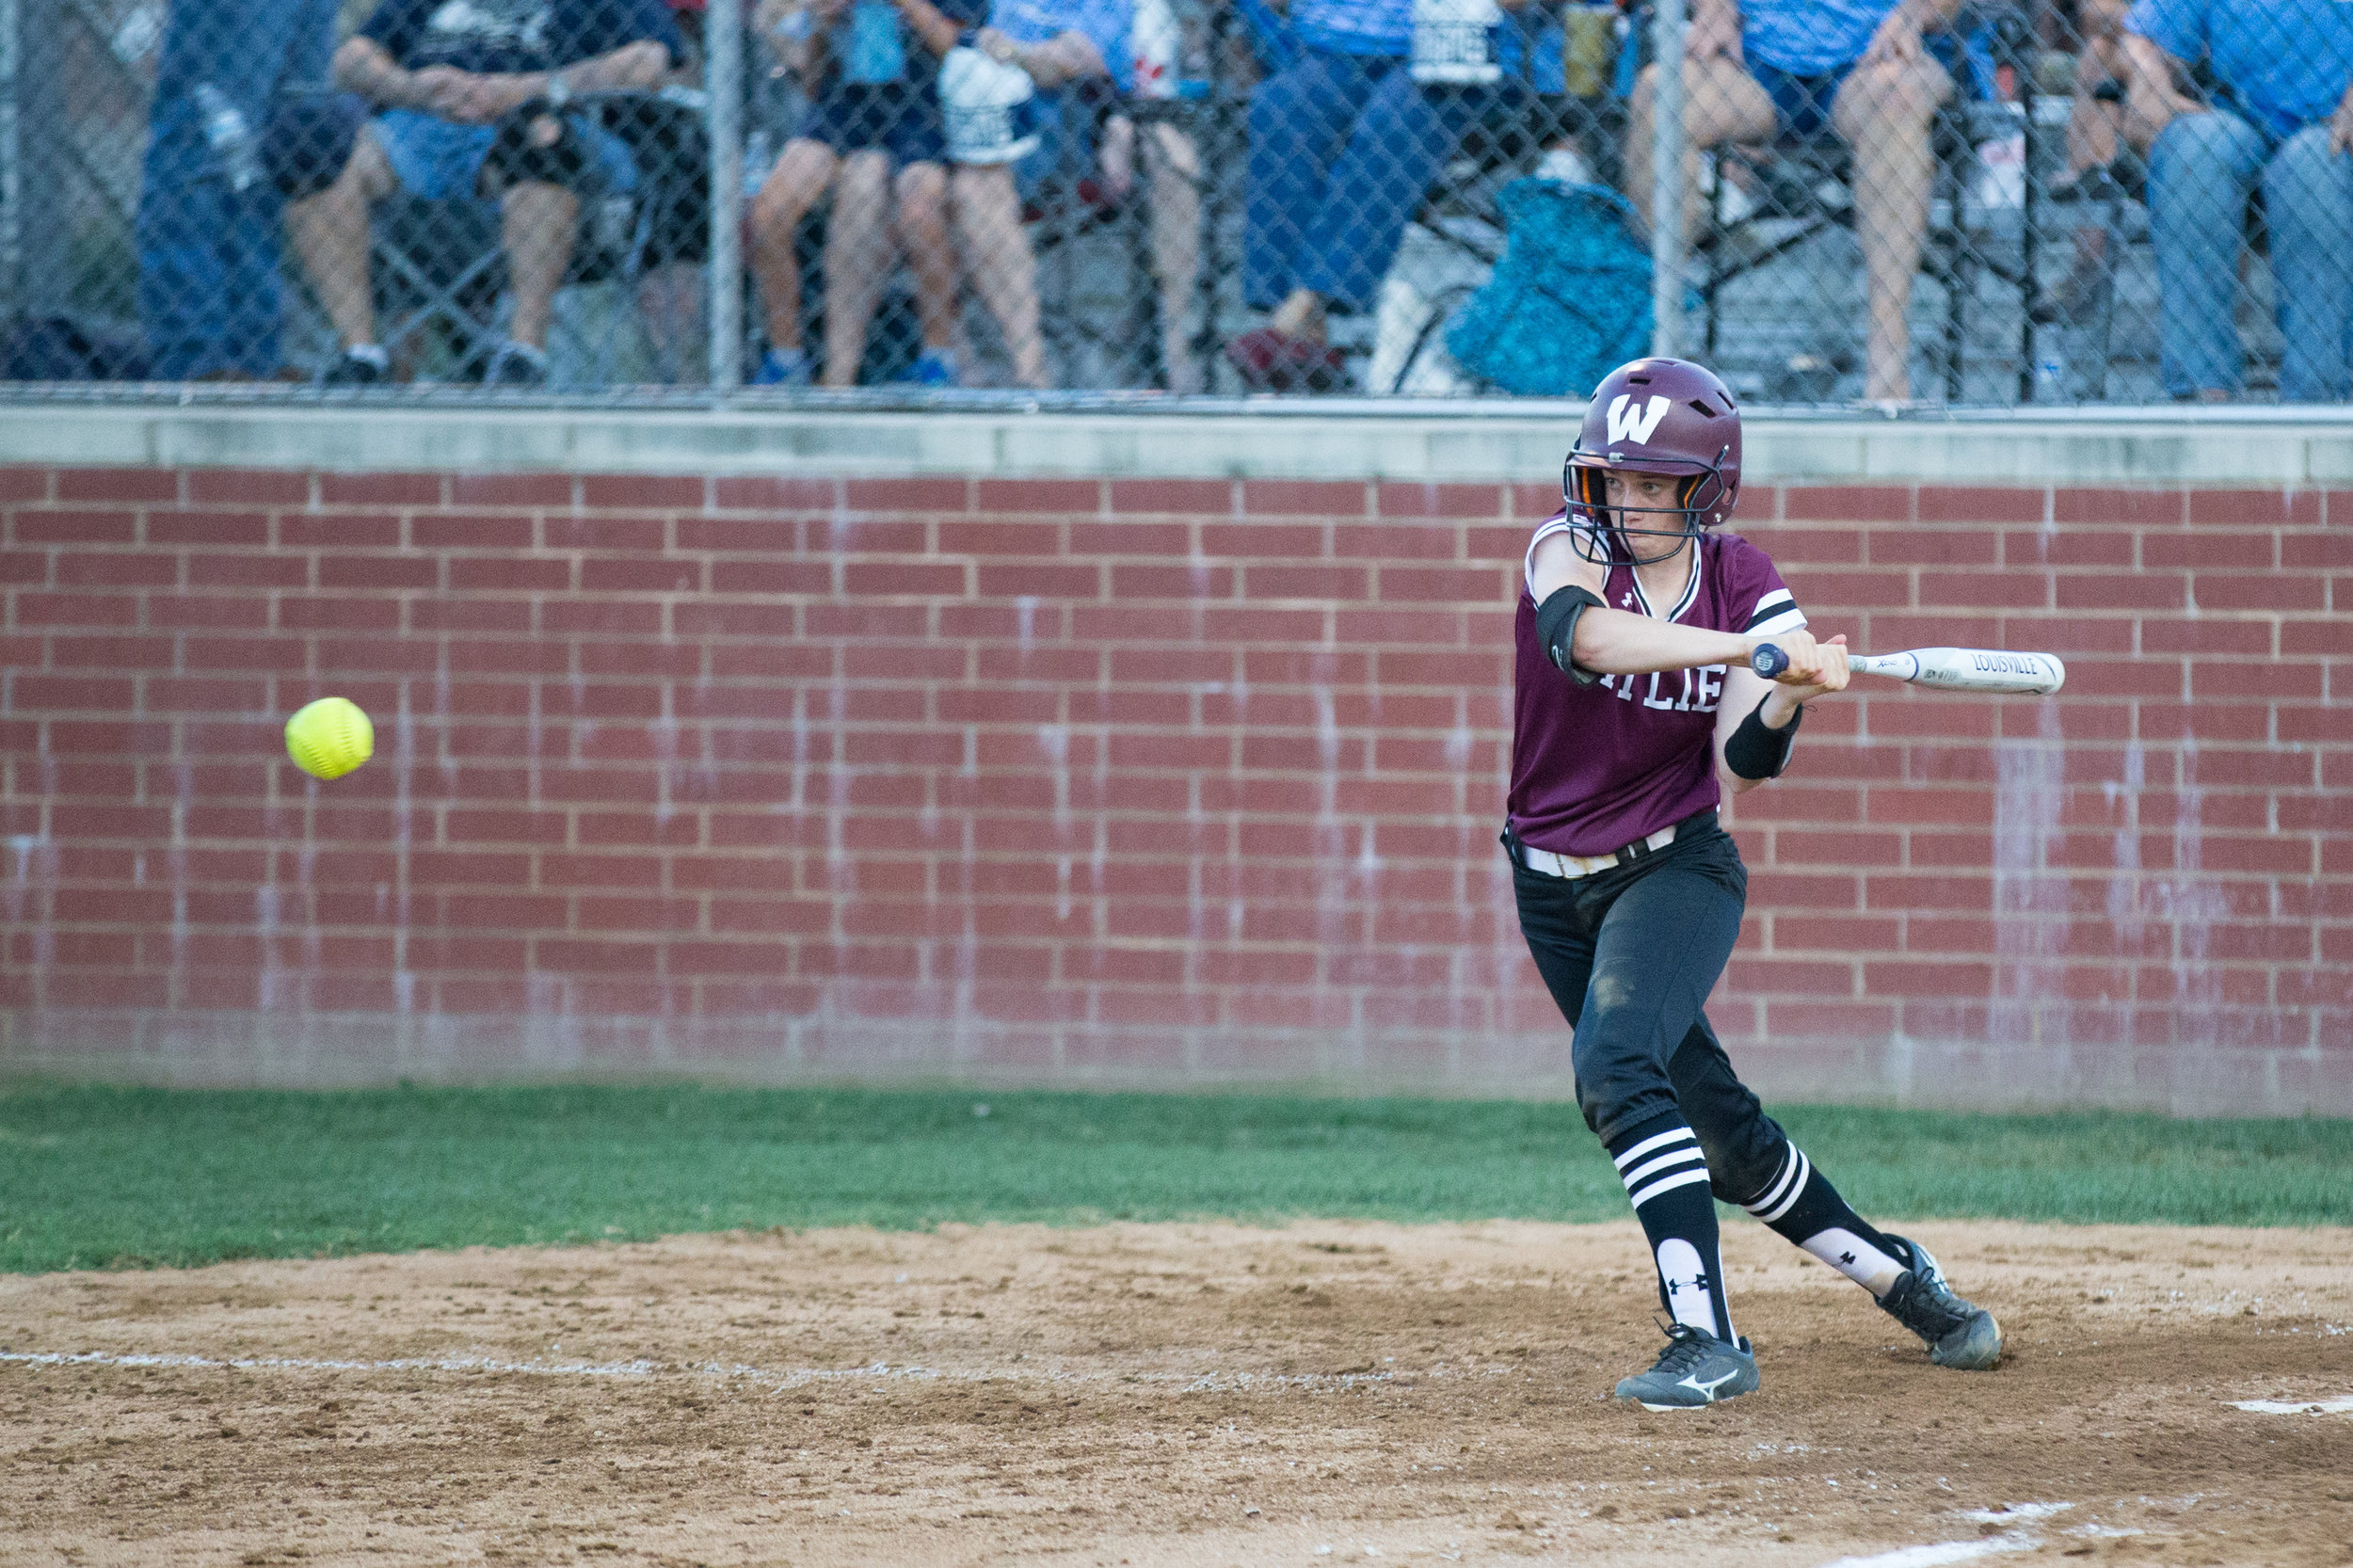 5_18 Wylie Softball-149.jpg